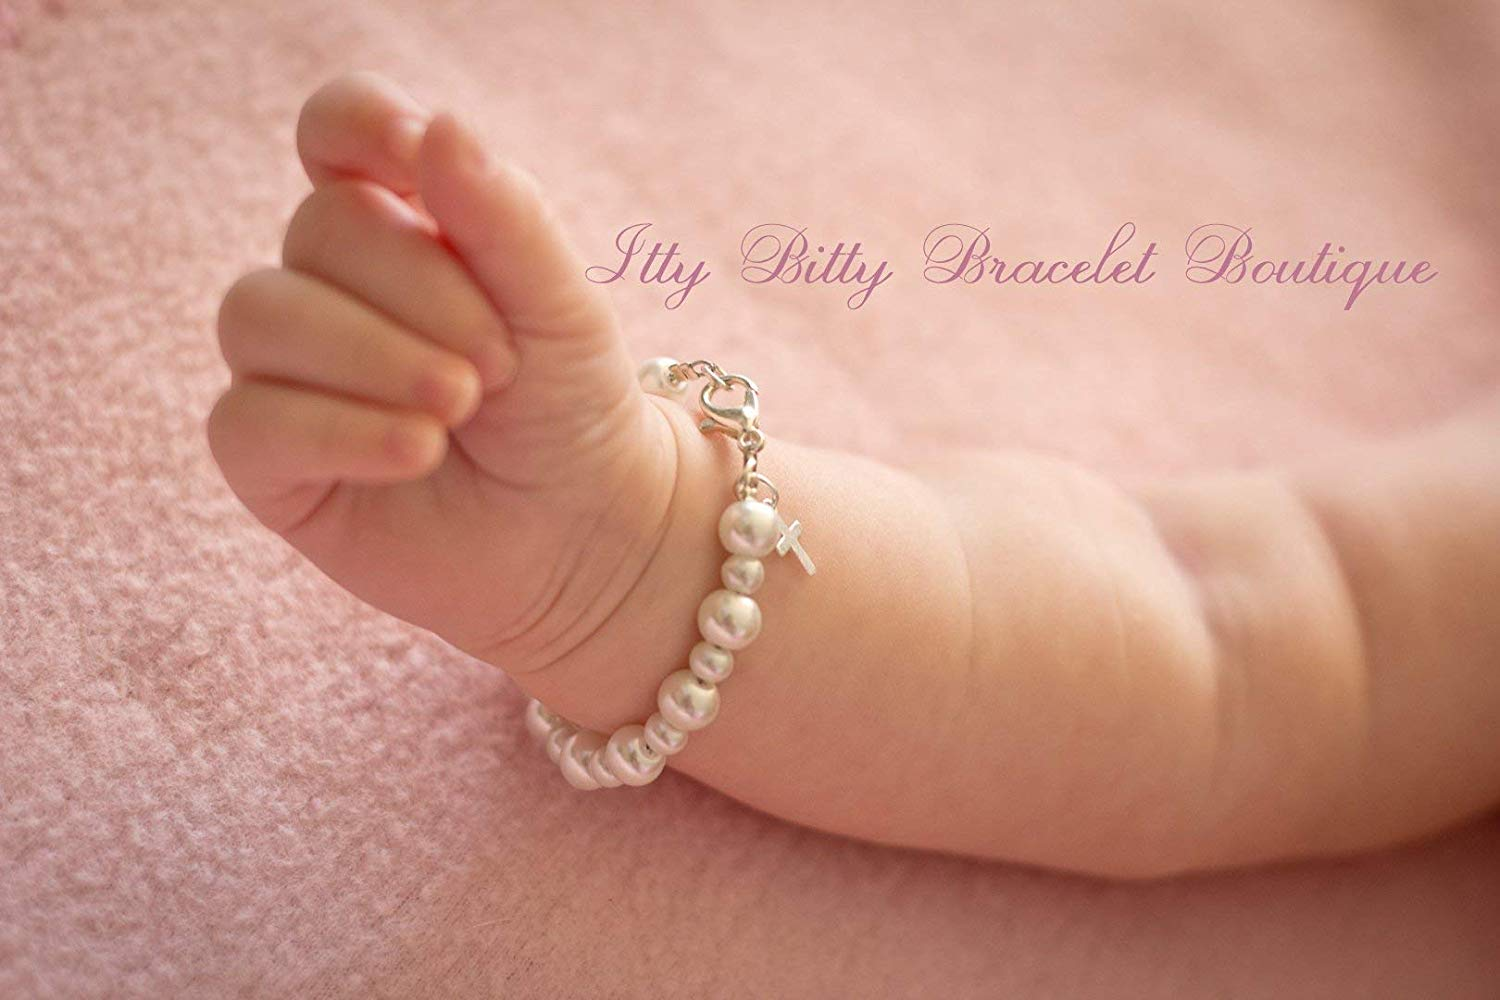 3daf77f97d134 Cheap Silver Gift For Baby, find Silver Gift For Baby deals on line ...